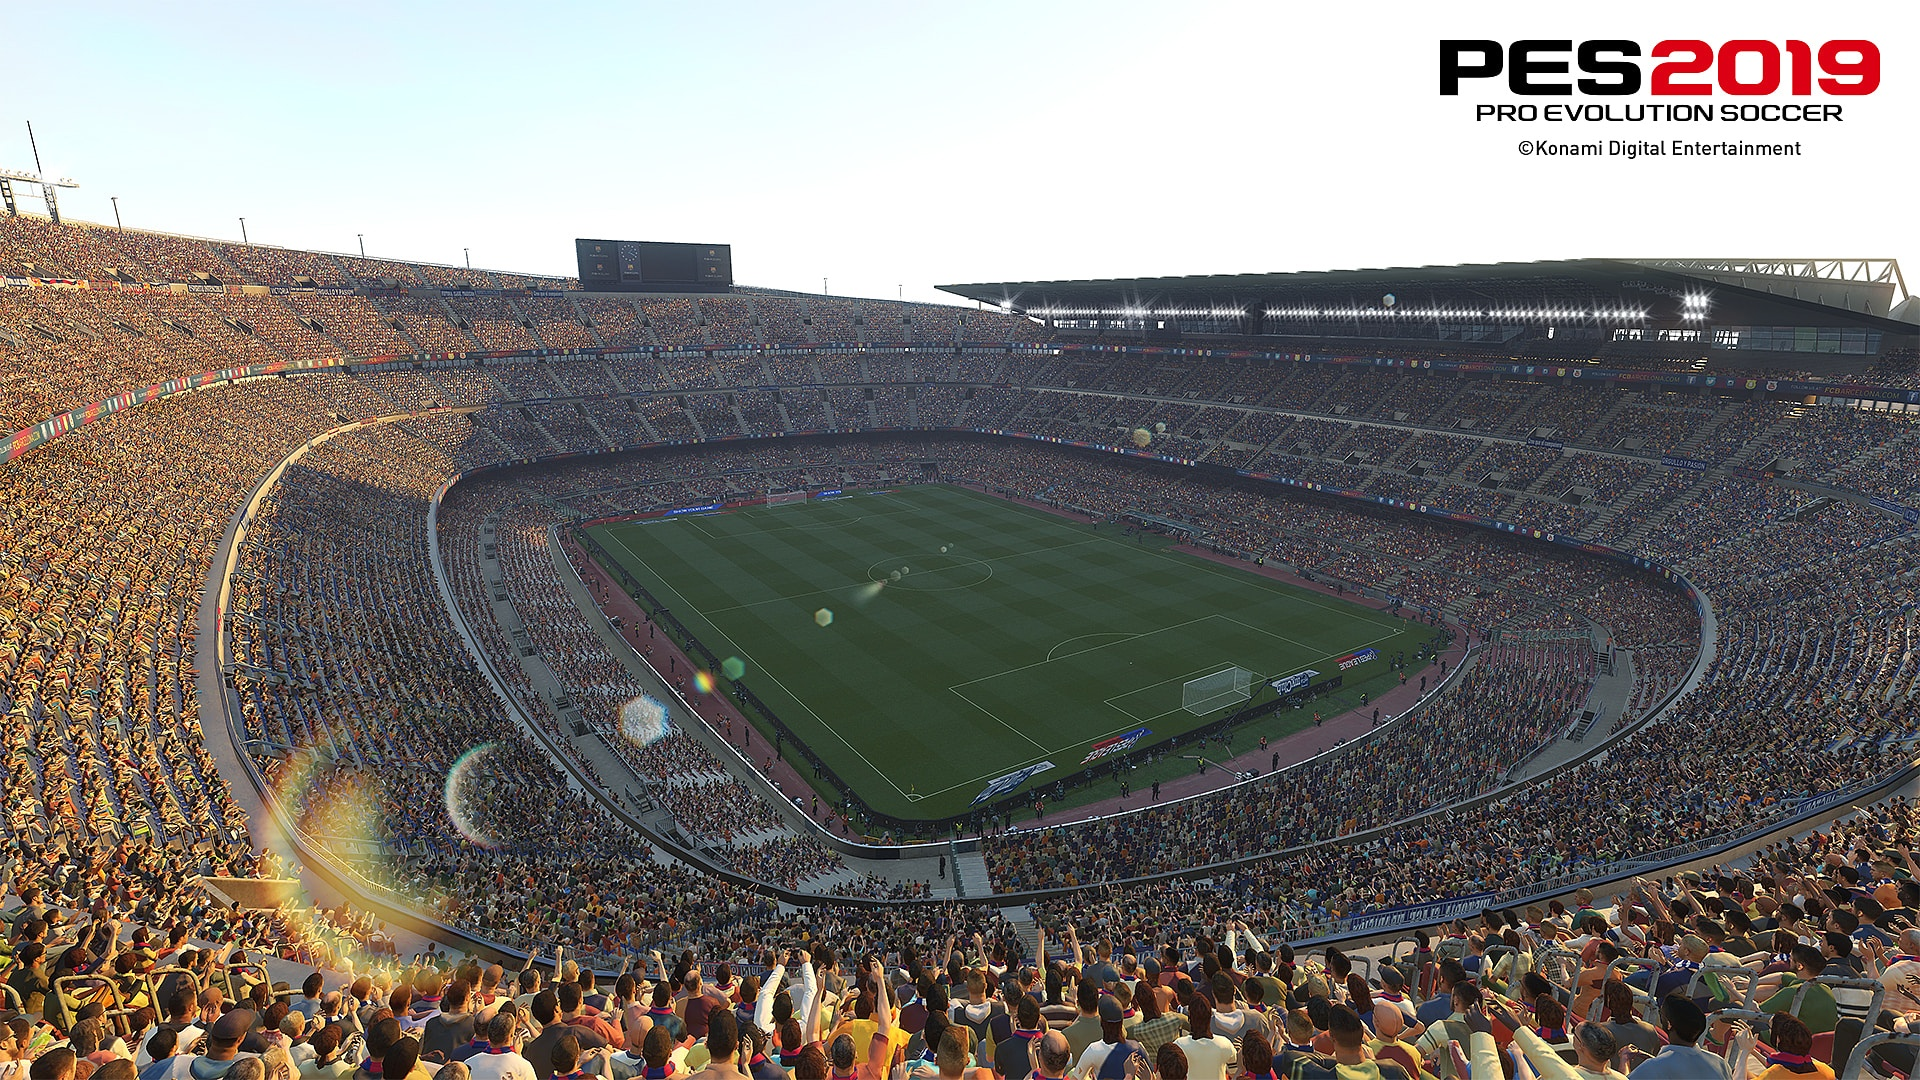 Football, Konami, PC, Pro Evo, Pro Evolution Soccer, Pro Evolution Soccer 2019, Pro Evolution Soccer 2019 Review, PS4, Rating 9/10, sim, soccer, Sports, Team, Xbox One